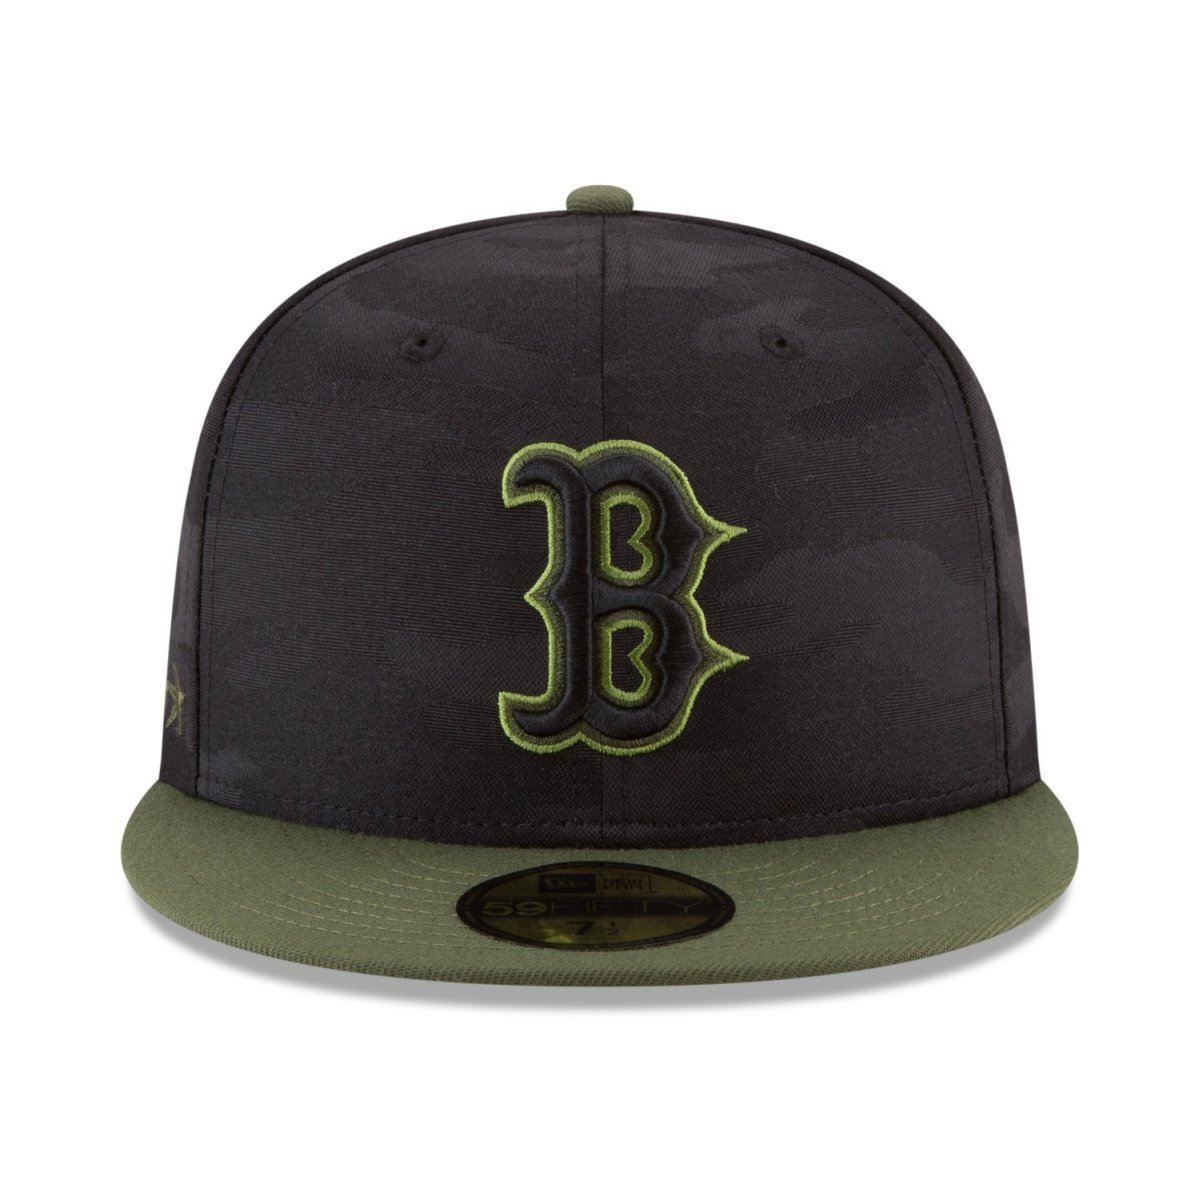 best sneakers fe2da b38c7 Amazon.com  New Era Boston Black   Green Sox Memorial Day Fitted Cap 59fifty  Basecap Limited Special Edition  Clothing